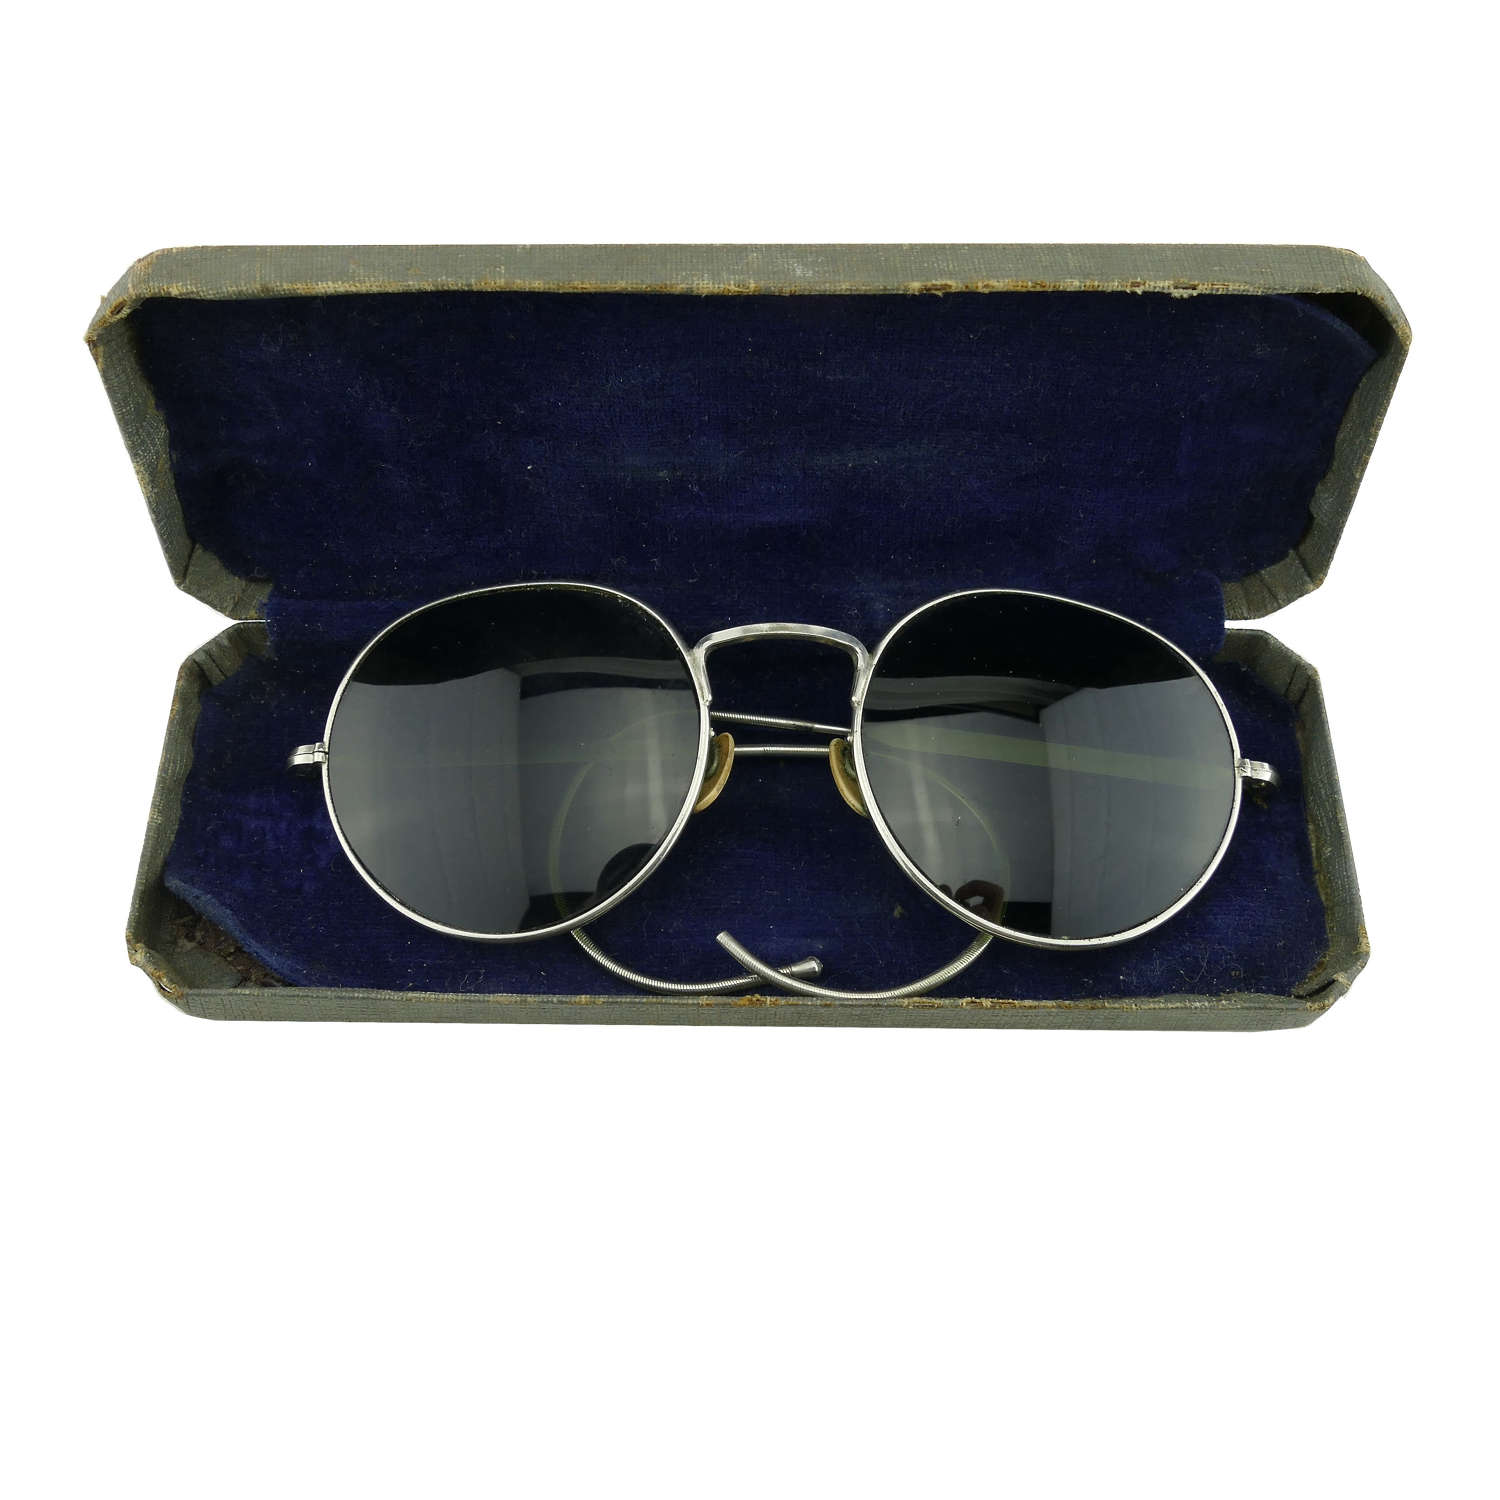 RAF MK.VIII flying spectacles, cased, history